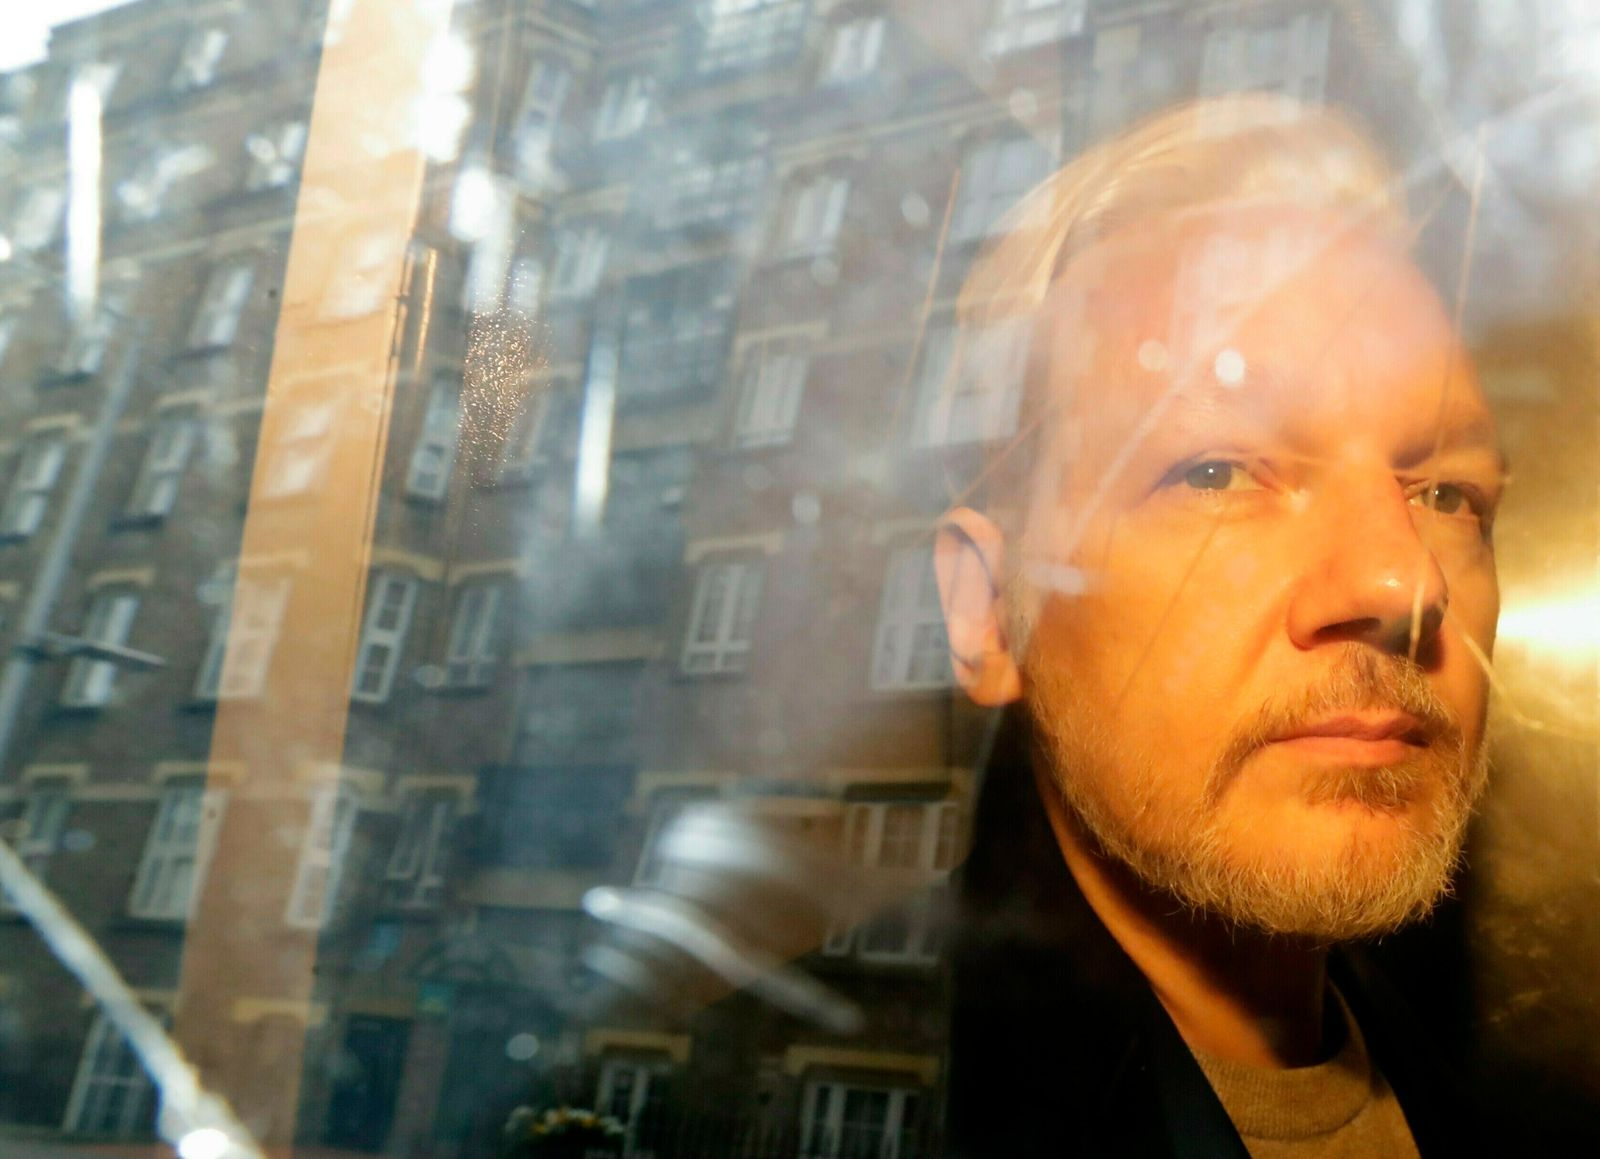 FILE - In this Wednesday, May 1, 2019 file photo, buildings are reflected in the window as WikiLeaks founder Julian Assange is taken from court, where he appeared on charges of jumping British bail seven years ago, in London. (AP Photo/Matt Dunham, File)